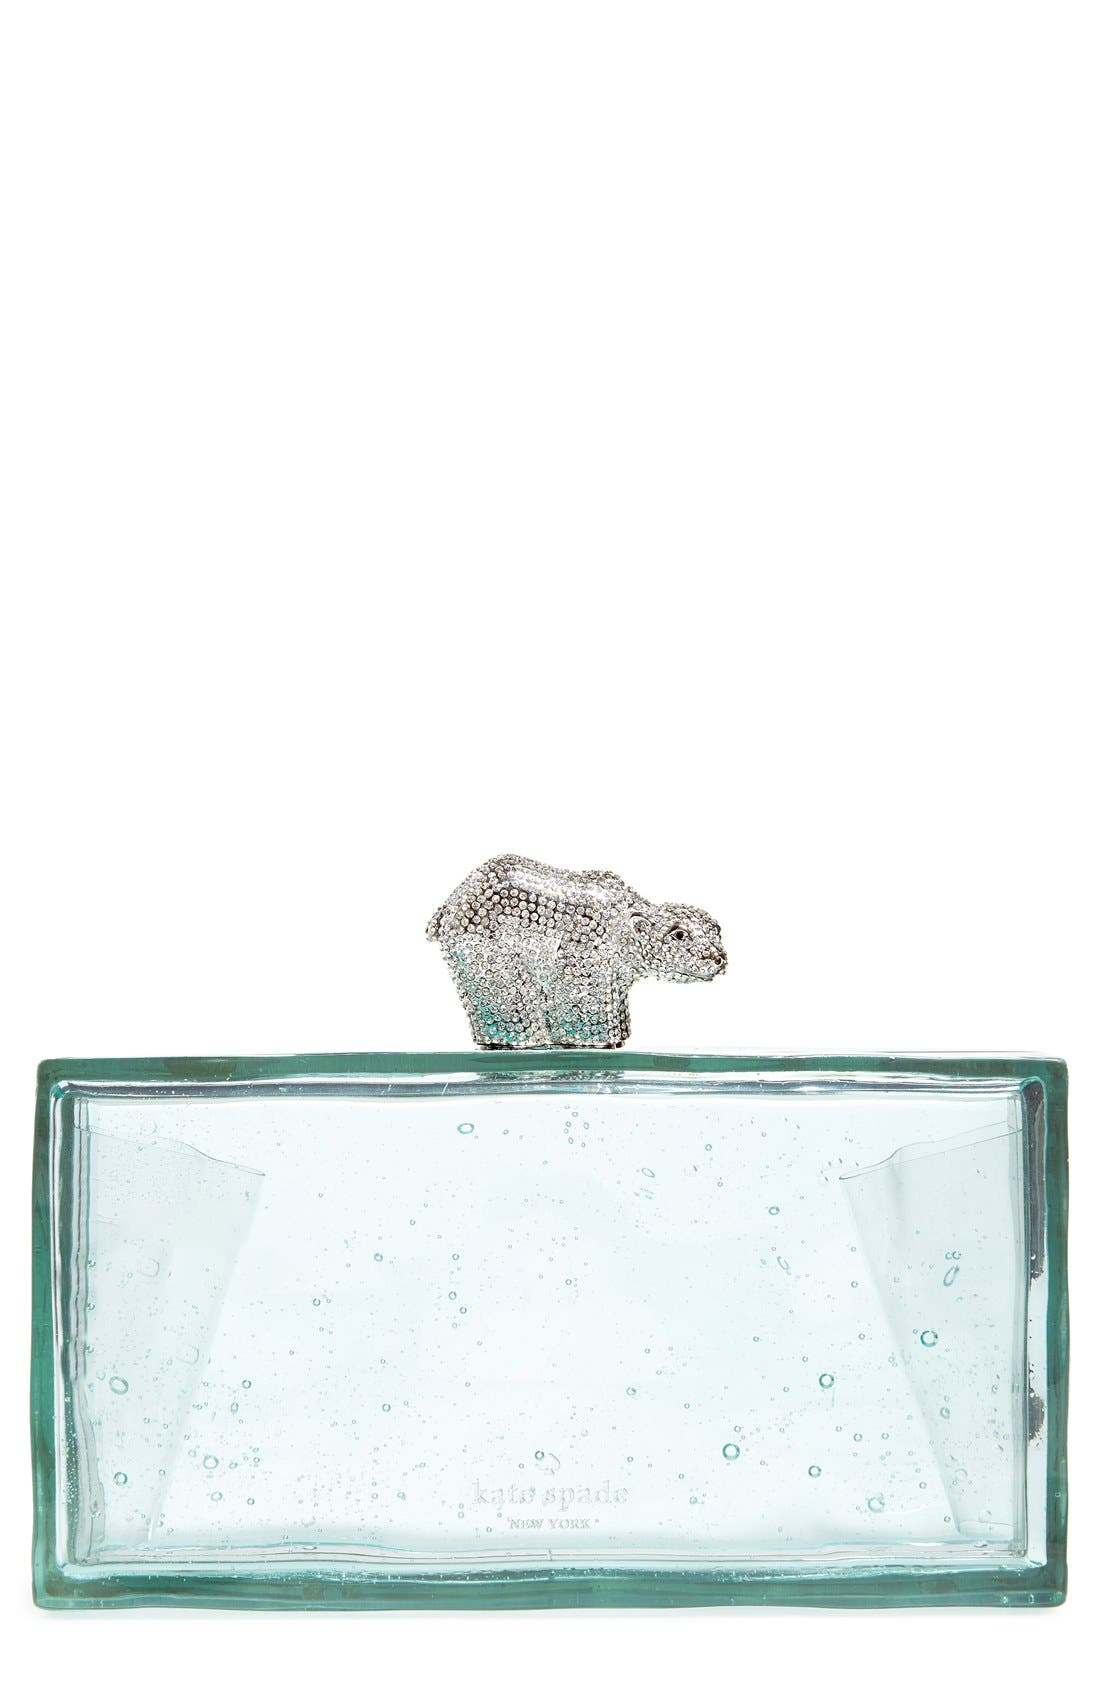 Main Image - kate spade new york 'polar bear on ice' clutch